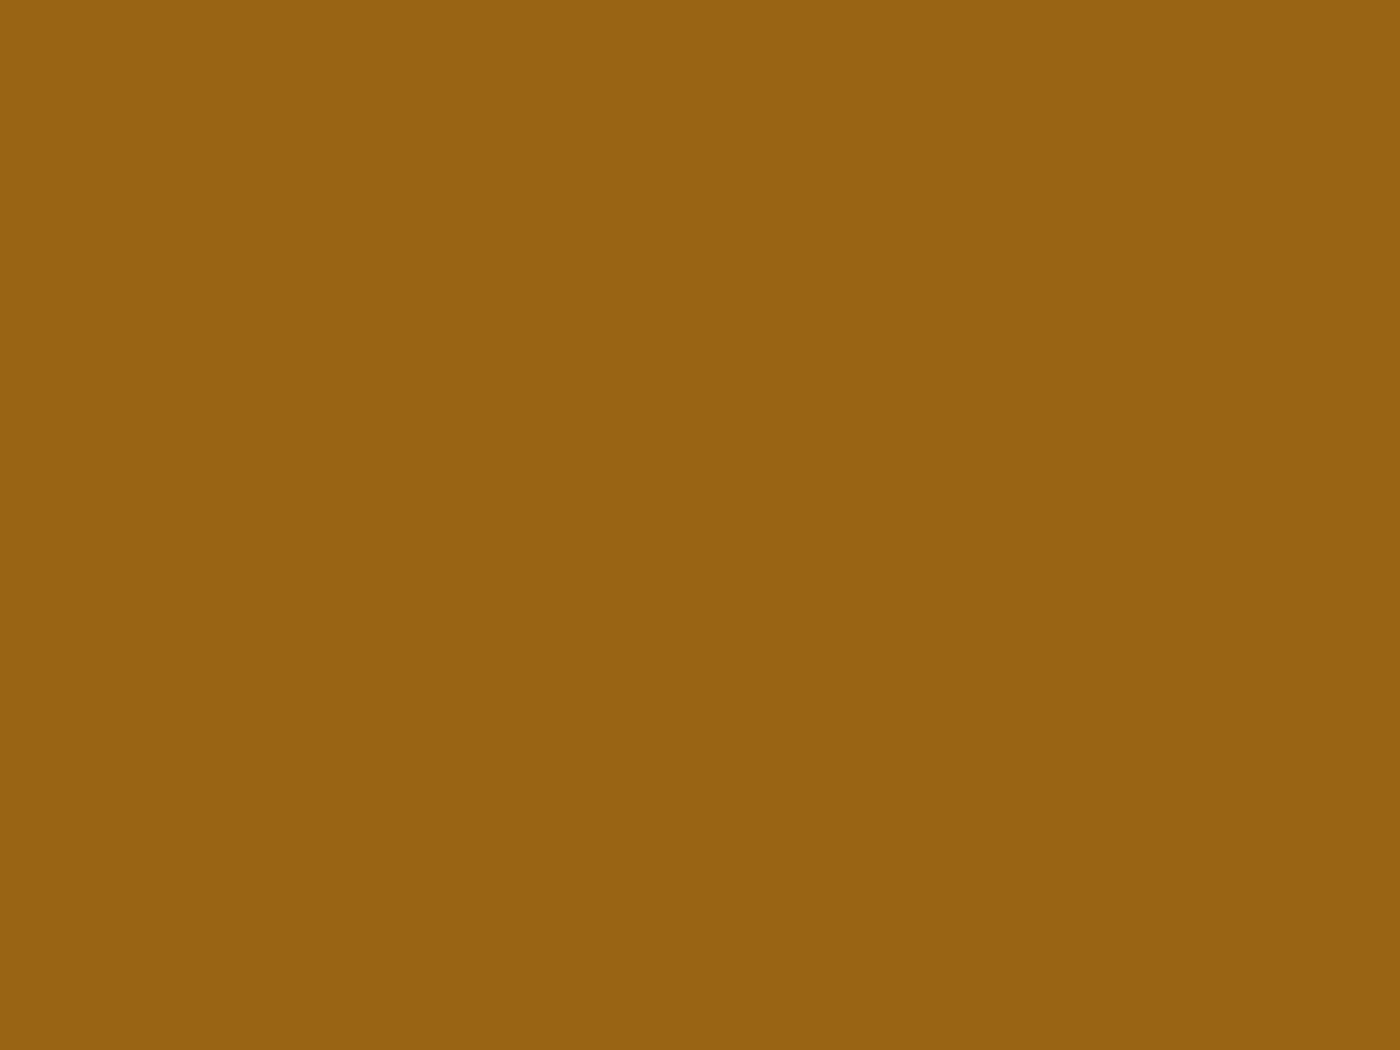 1400x1050 Golden Brown Solid Color Background